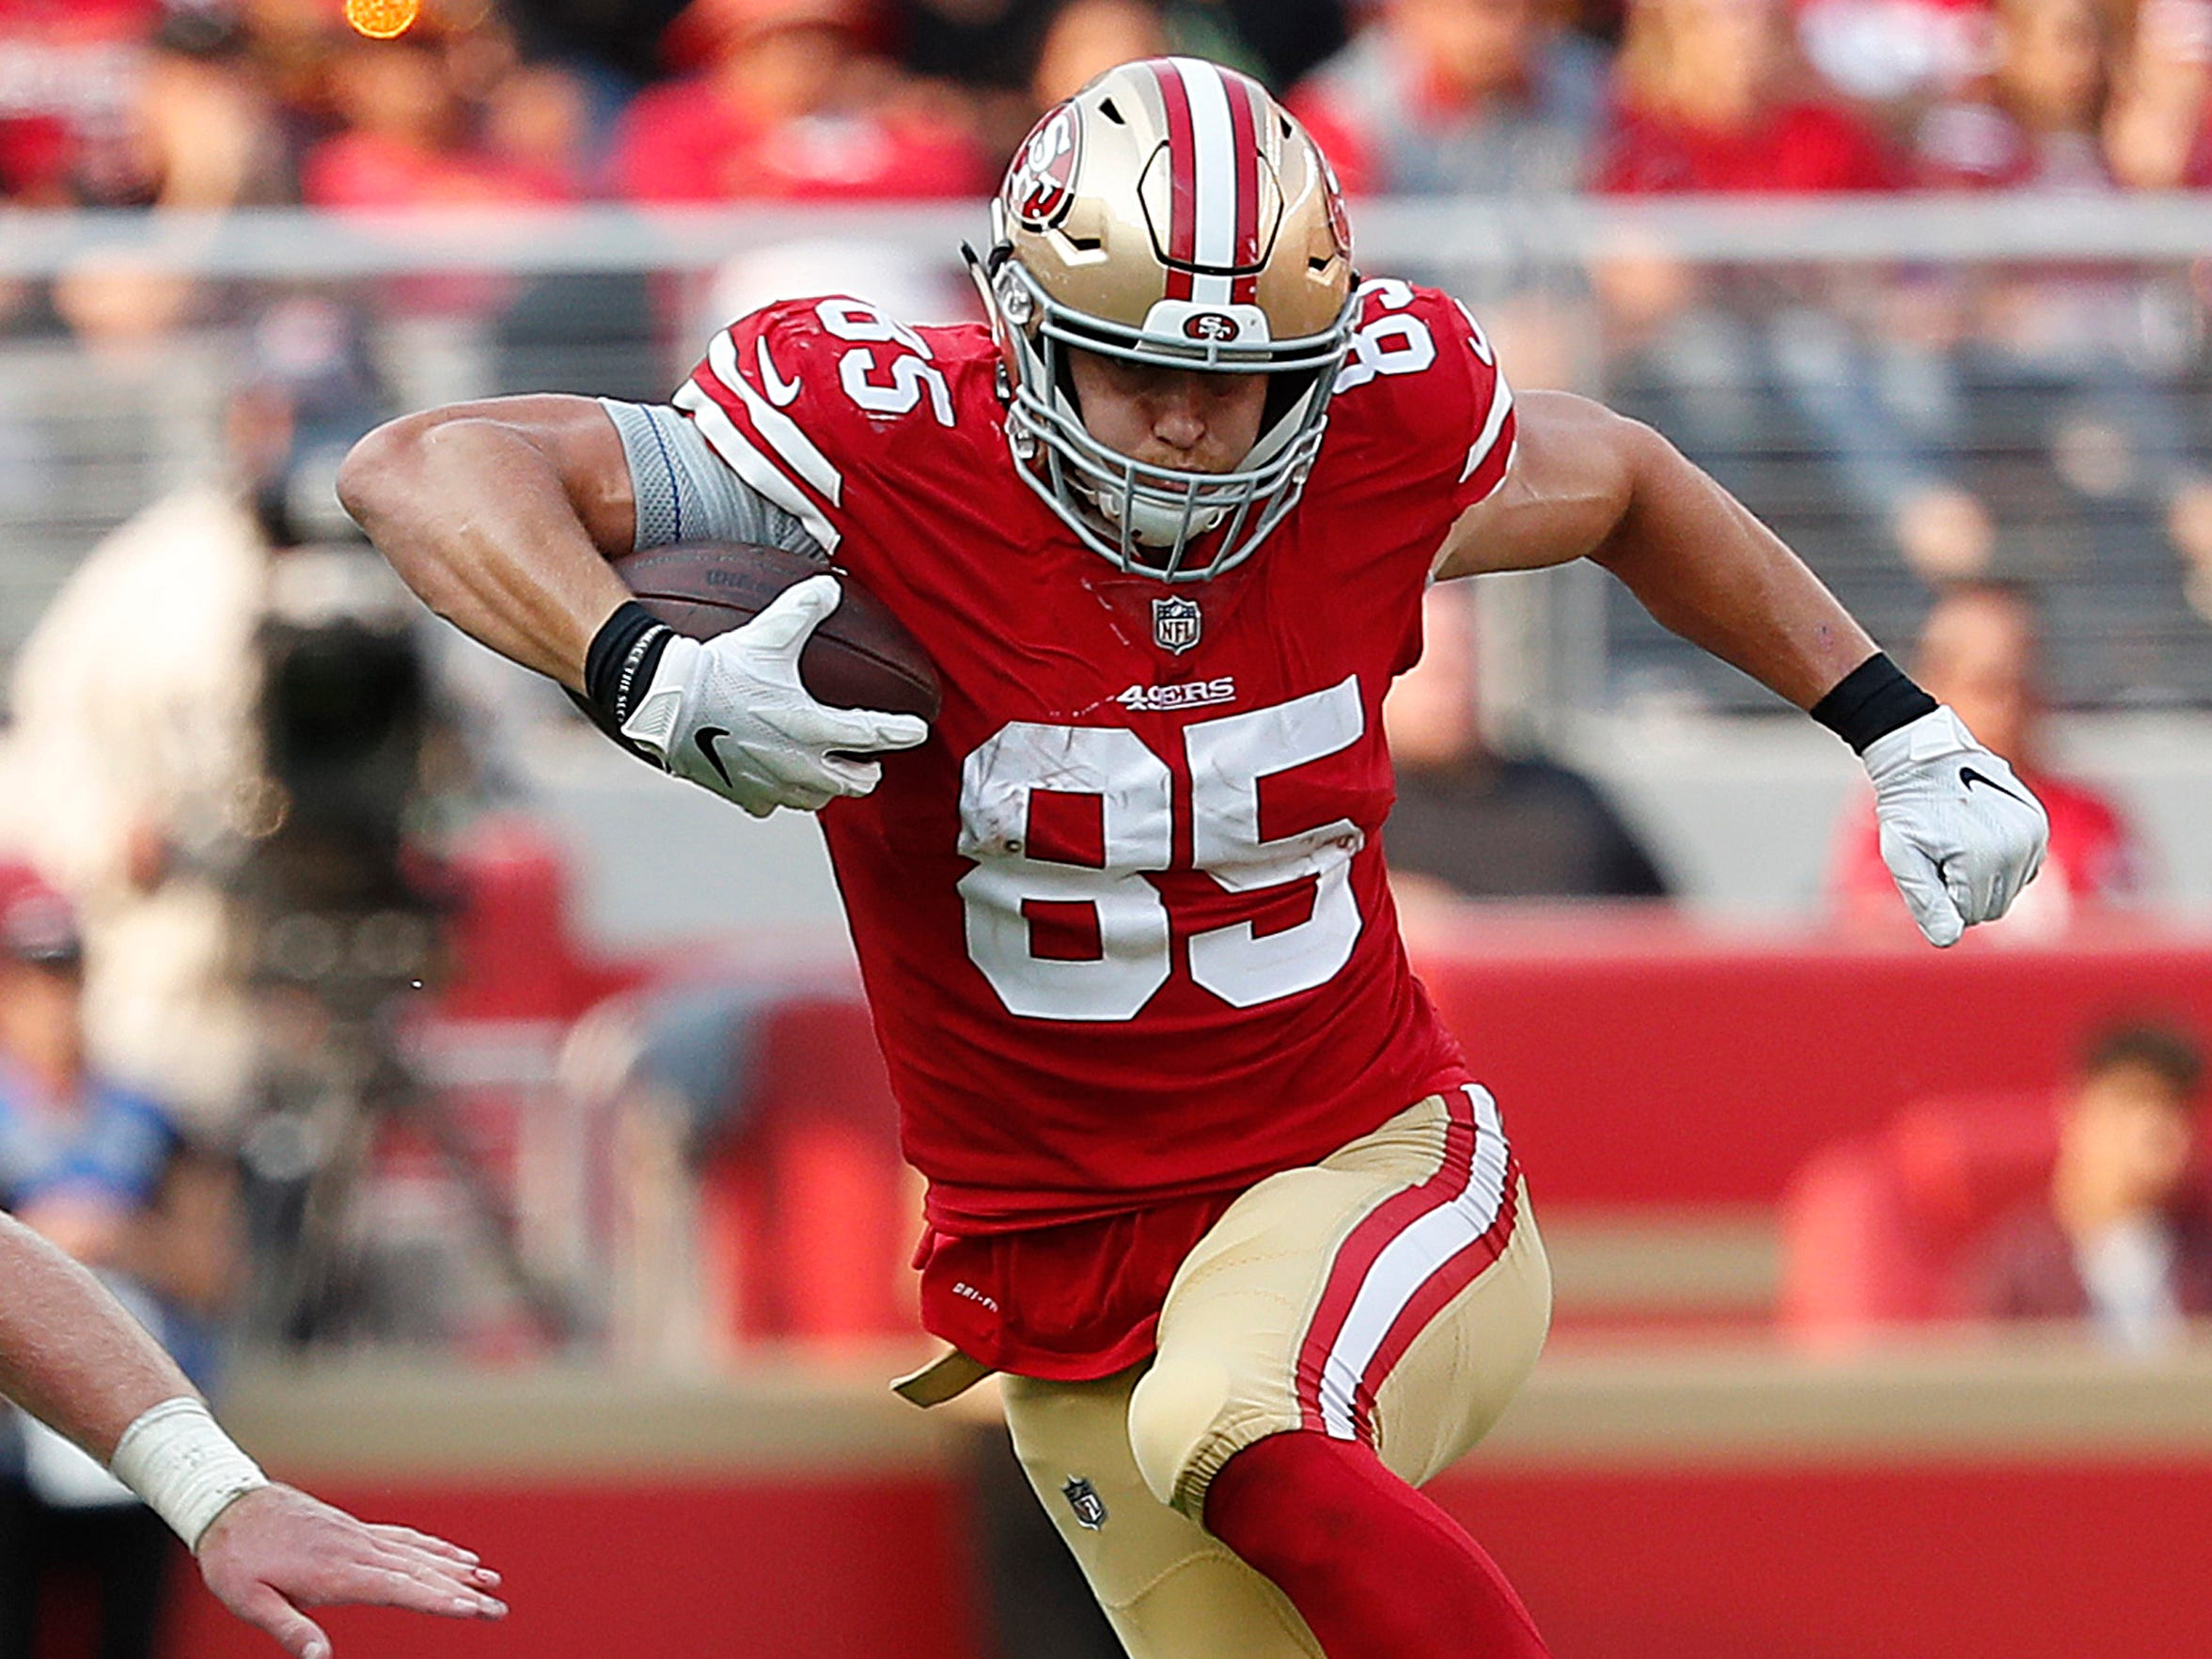 San Francisco 49ers tight end George Kittle (85) runs against Arizona Cardinals safety Budda Baker, bottom, during the second half of an NFL football game in Santa Clara, Calif., Sunday, Oct. 7, 2018.